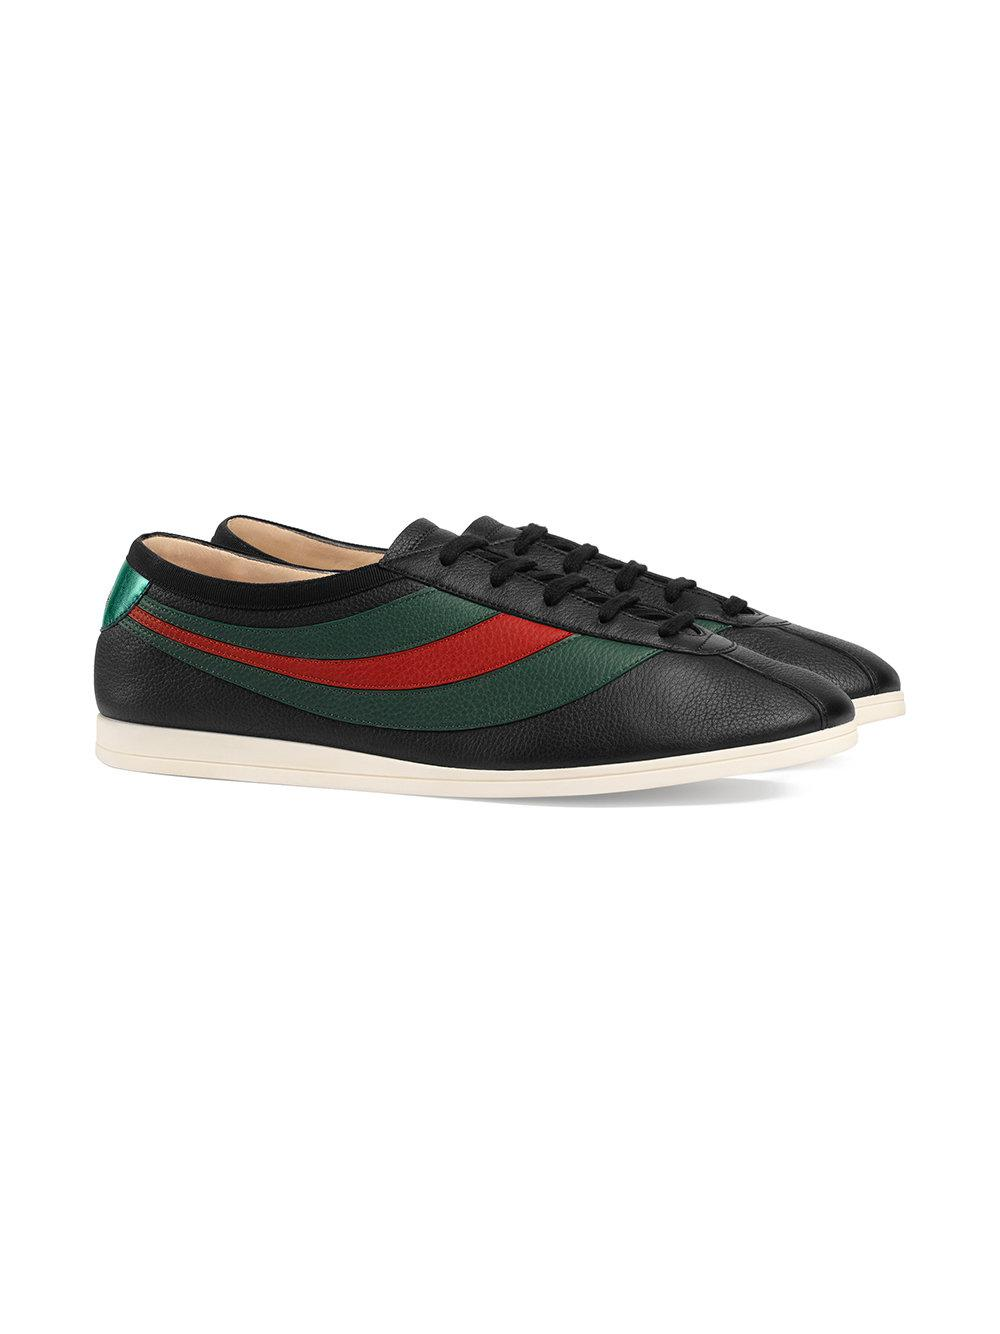 dd12a0aa204 Lyst - Gucci Leather Low-top Sneaker With Web in Black for Men - Save 5%